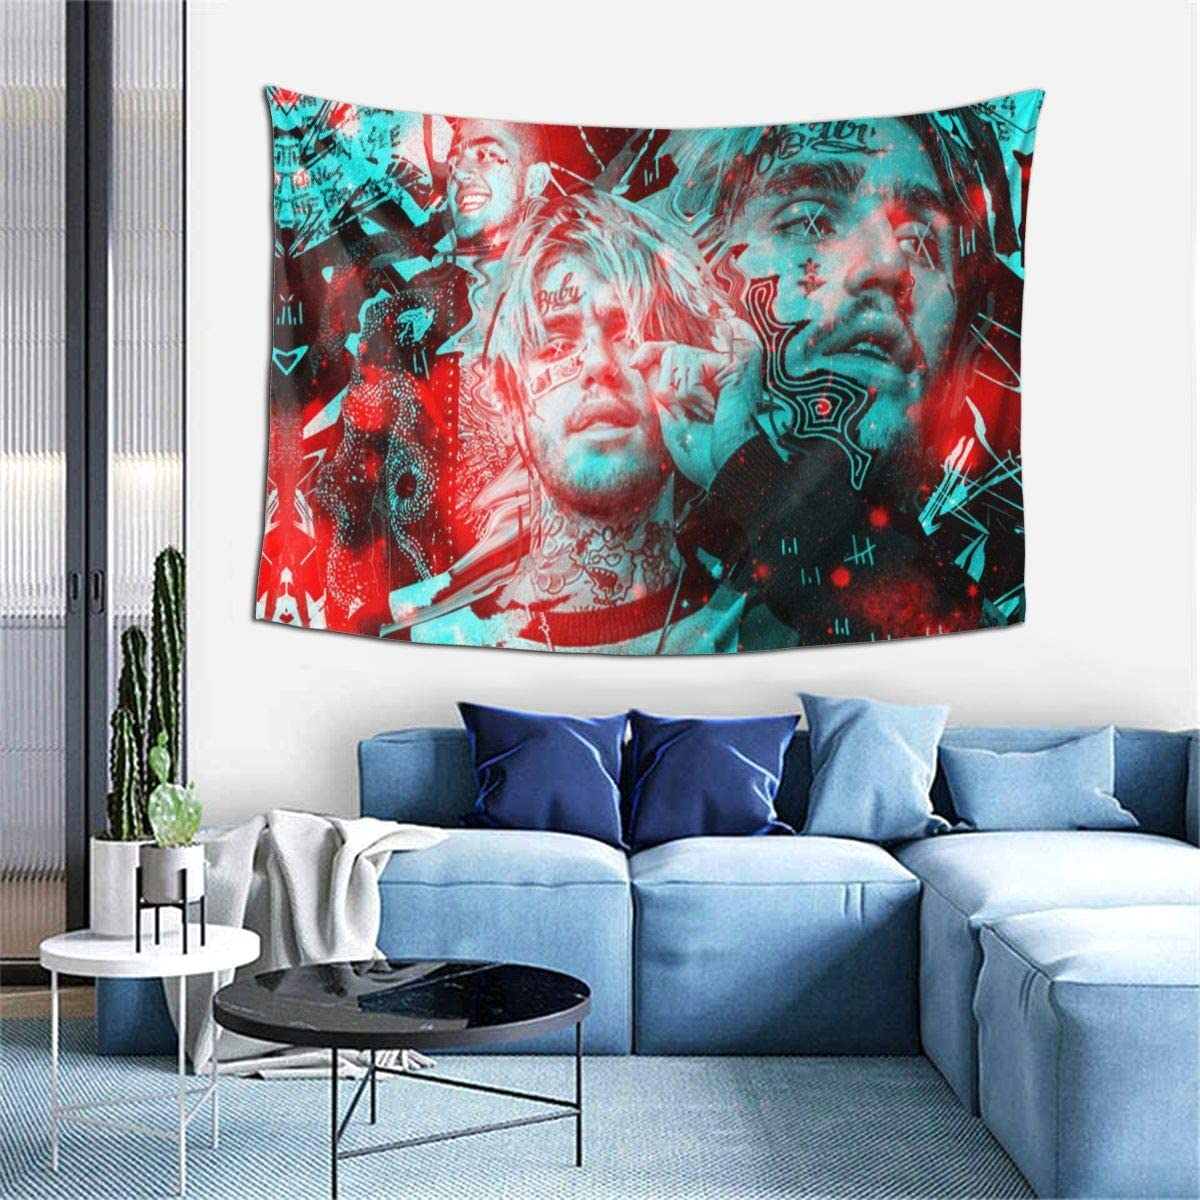 Antonia Bellamy rapper poster Tapestry Wall Hanging For Living Room Bedroom Dorm Room Home Decor 60 X 40in